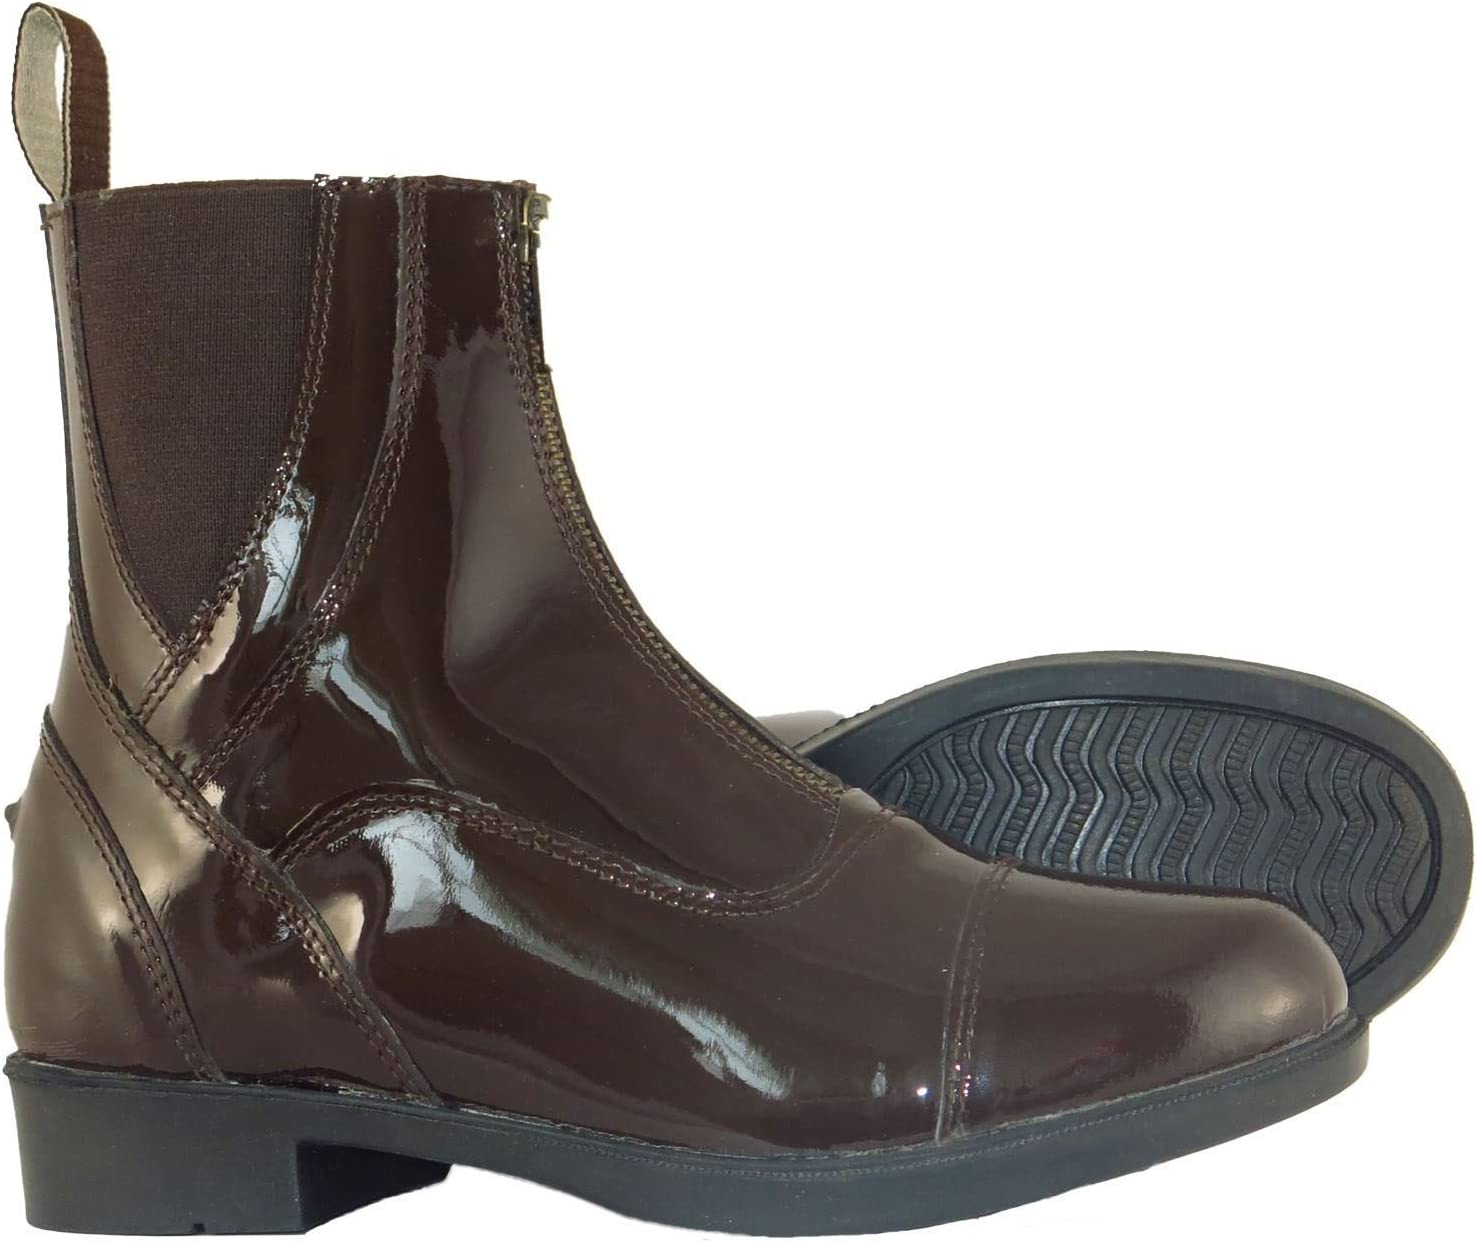 Joy Rider Patent Leather Horse Riding Front Zip Jodhpur Boots in and Sizes